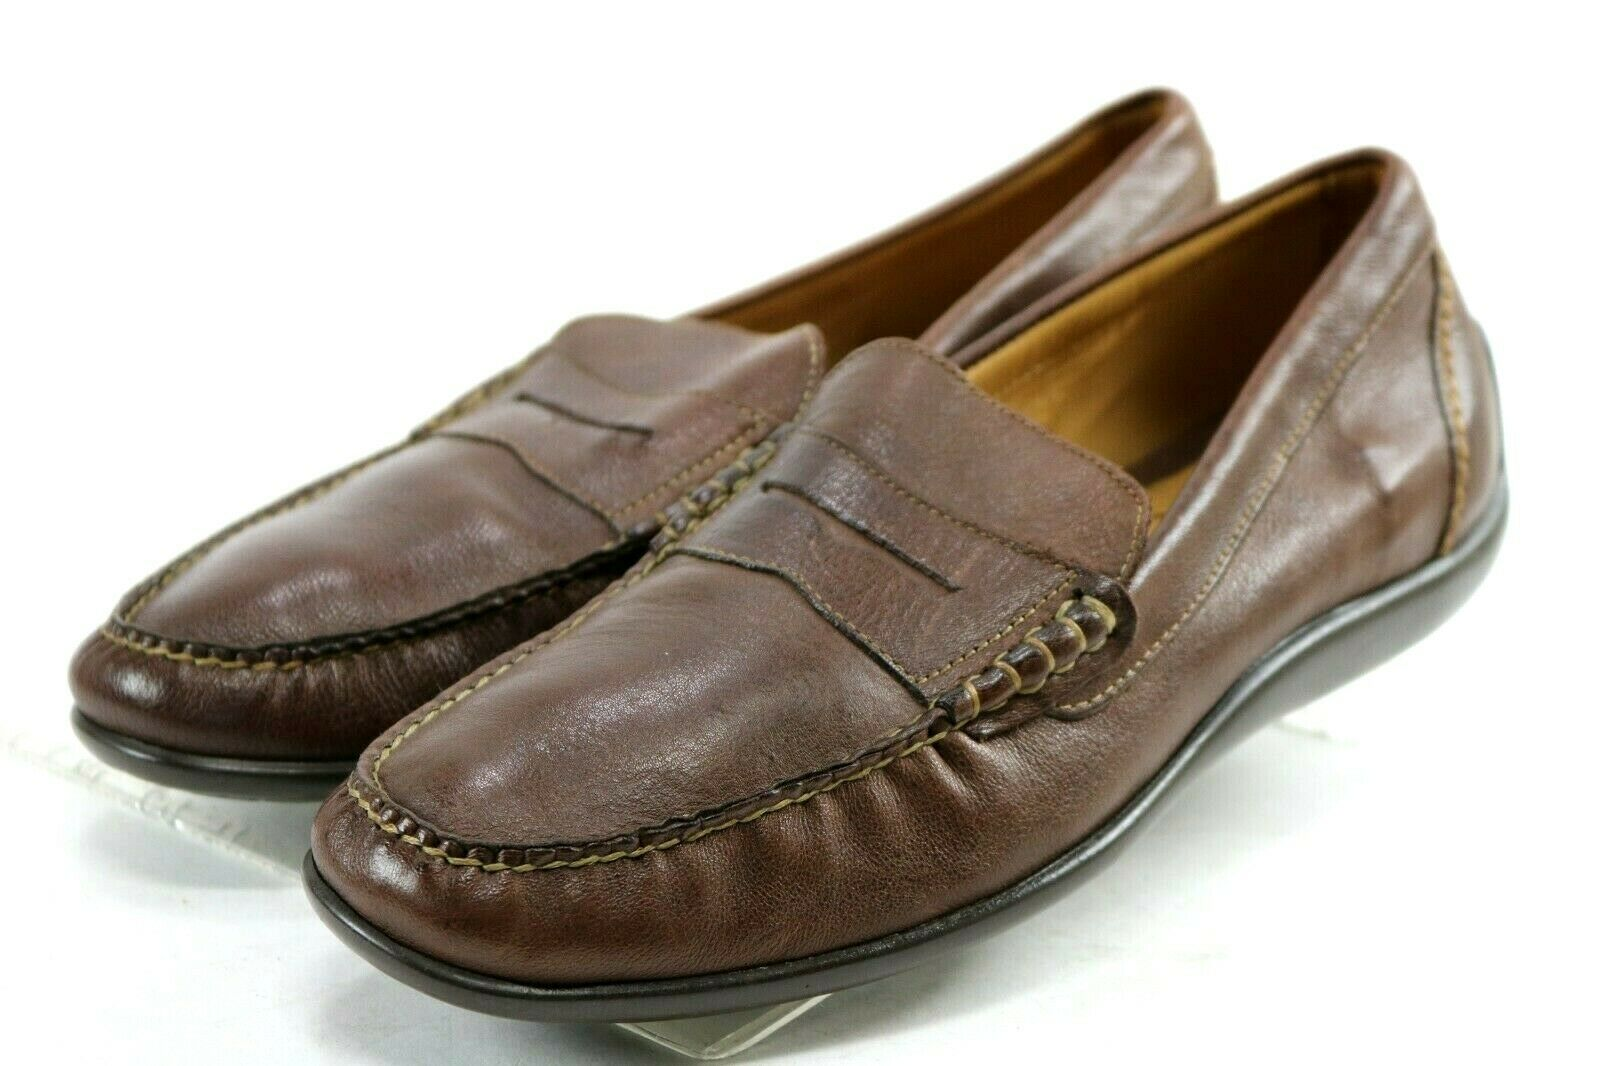 Martin Dingman Penny Loafer  Men's Slip-On shoes Size 9 Brown Leather